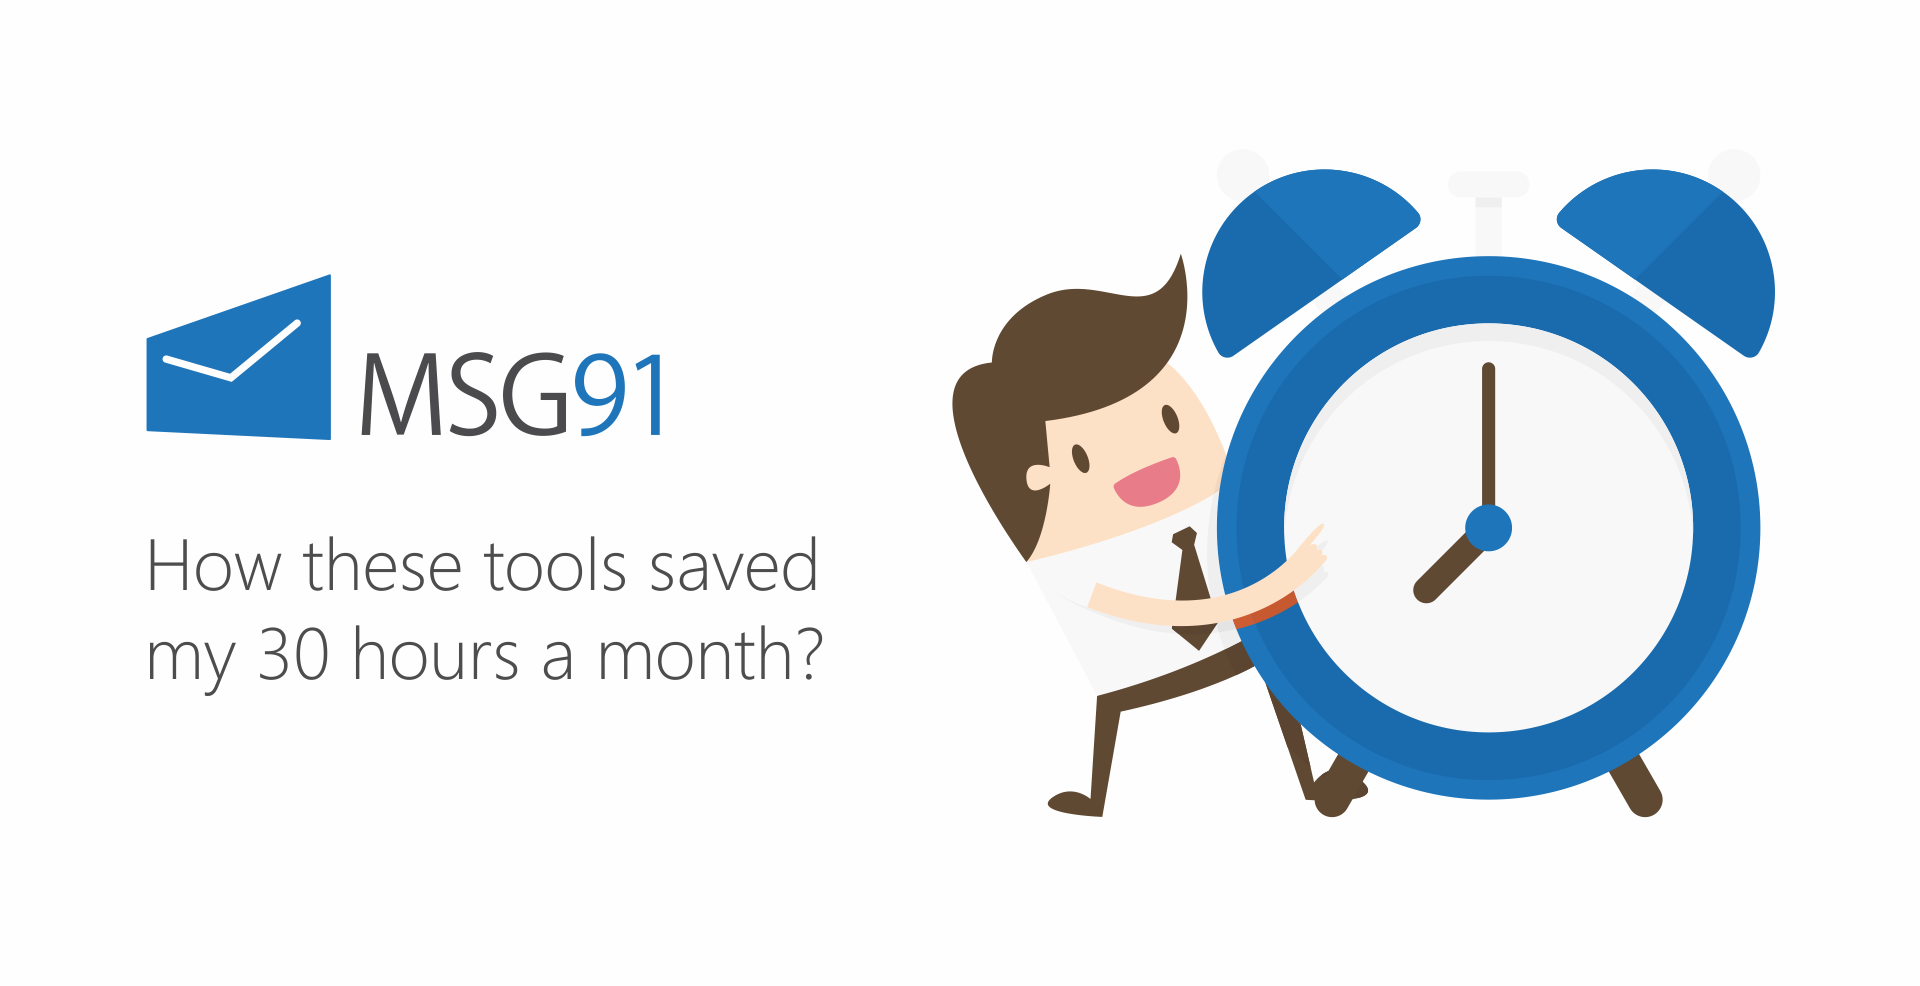 How these tools saved my 30 hours a month?